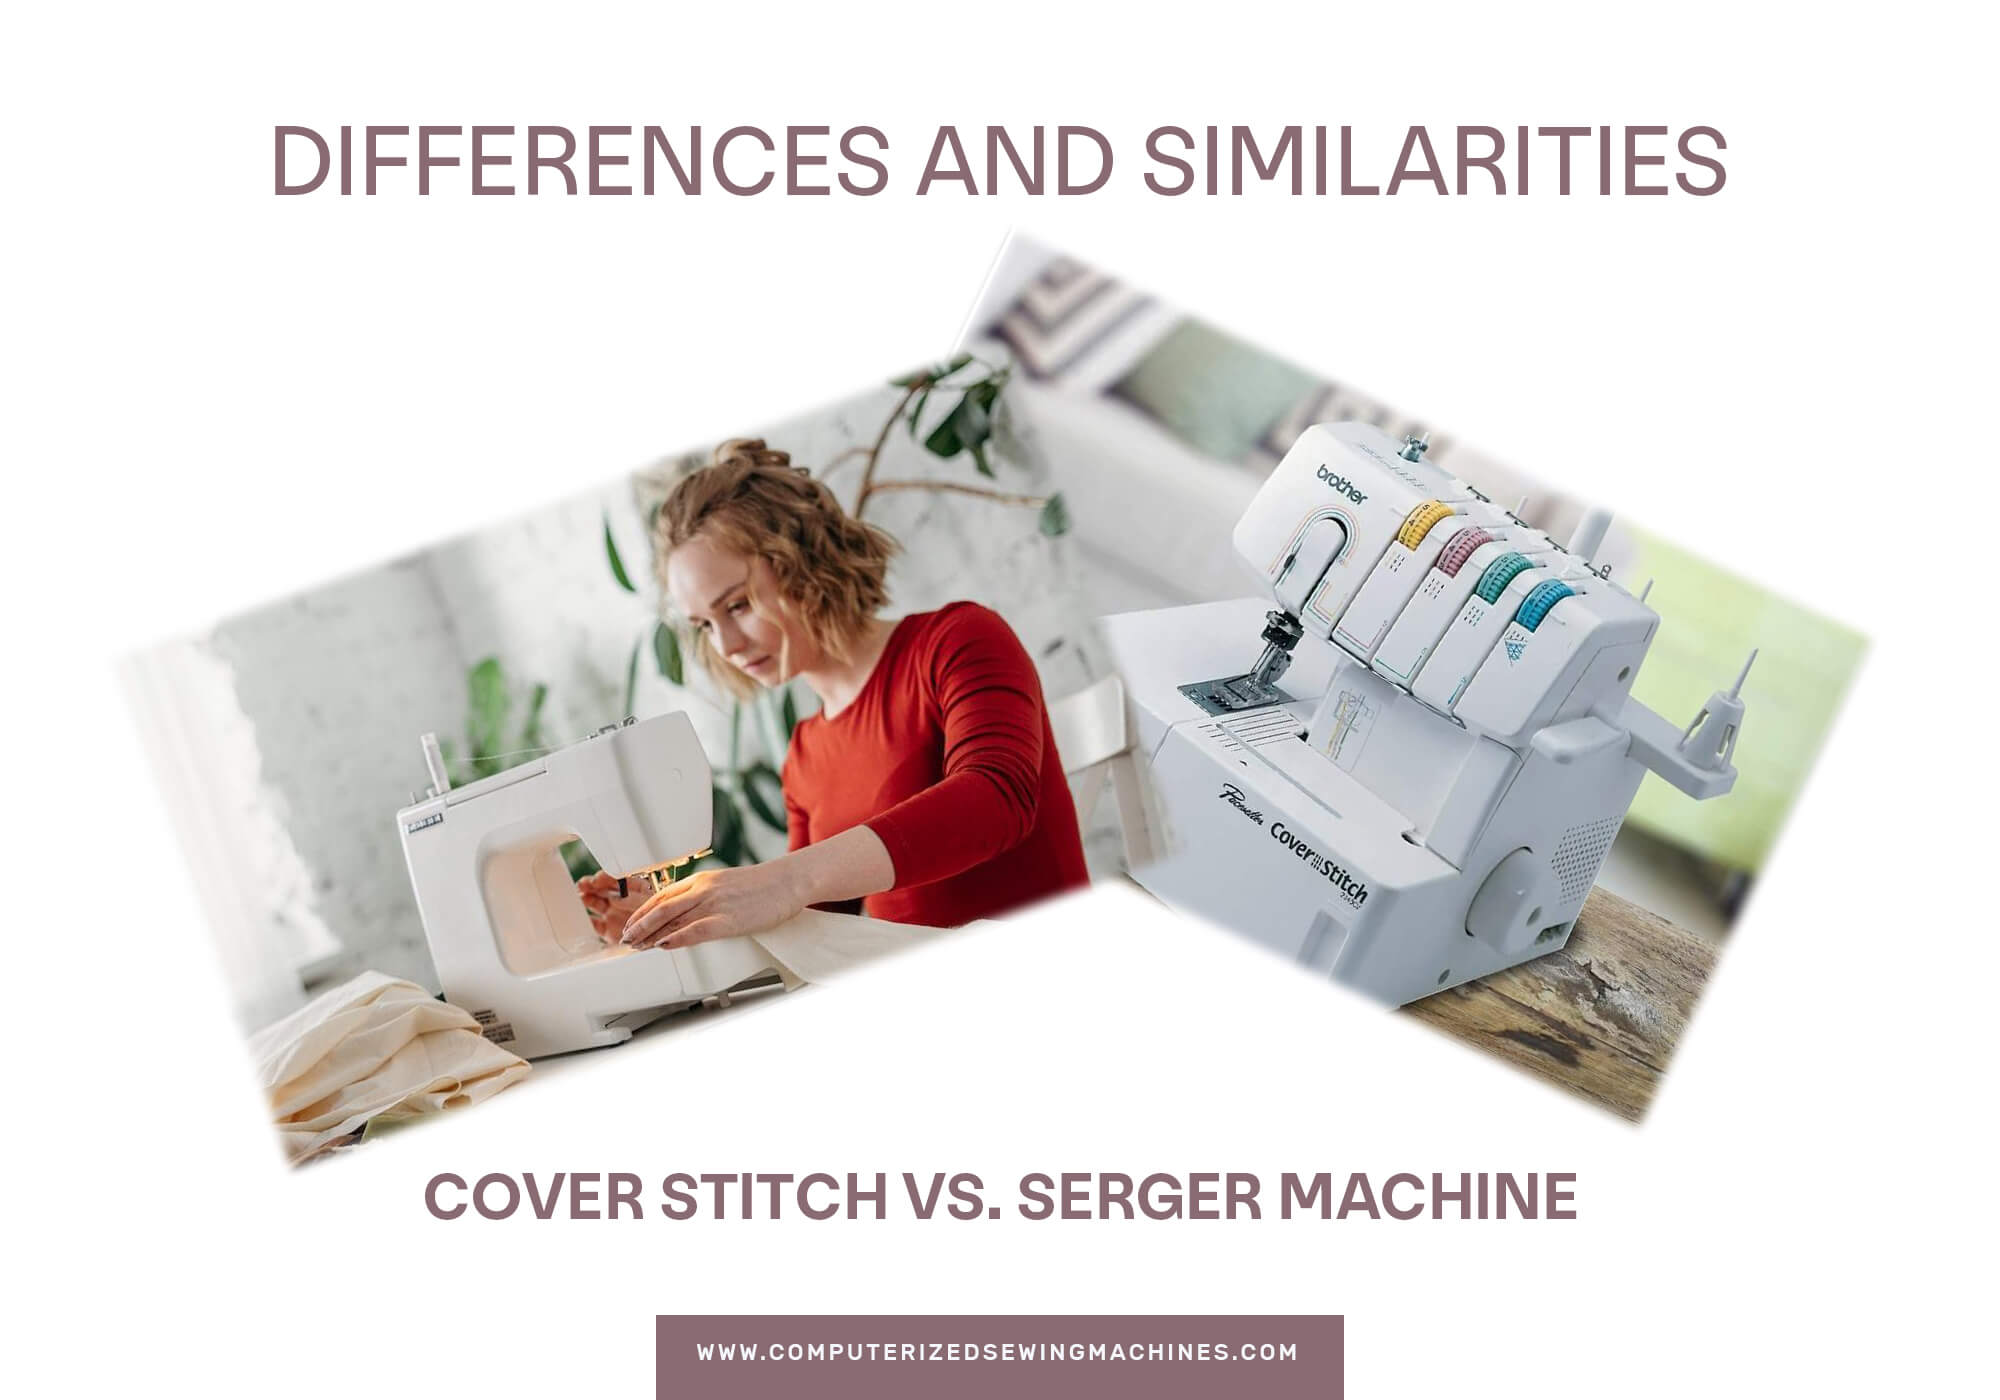 Cover Stitch Vs. Serger Machine: Differences And Similarities